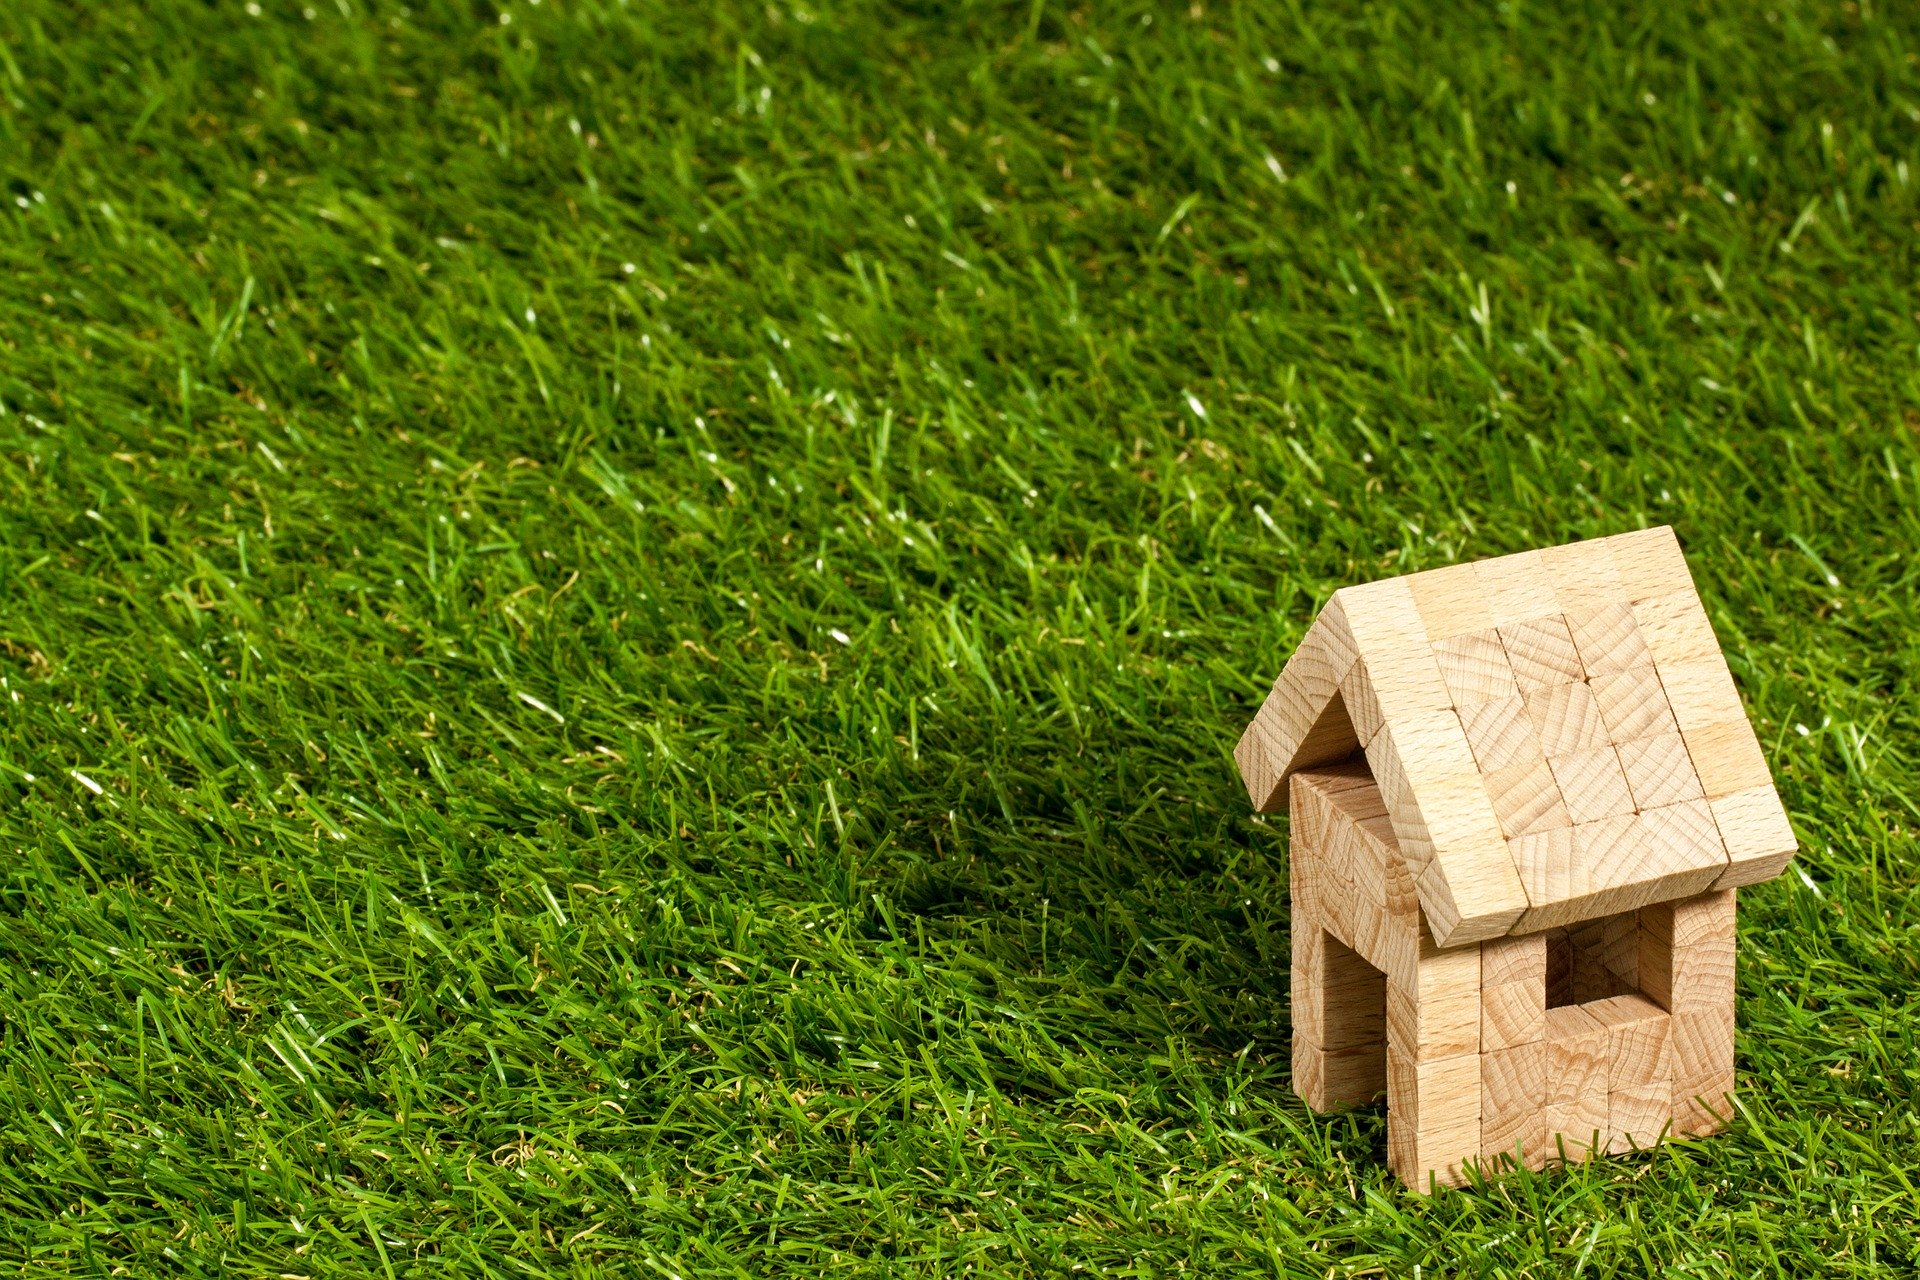 A small wooden model house on the grass.